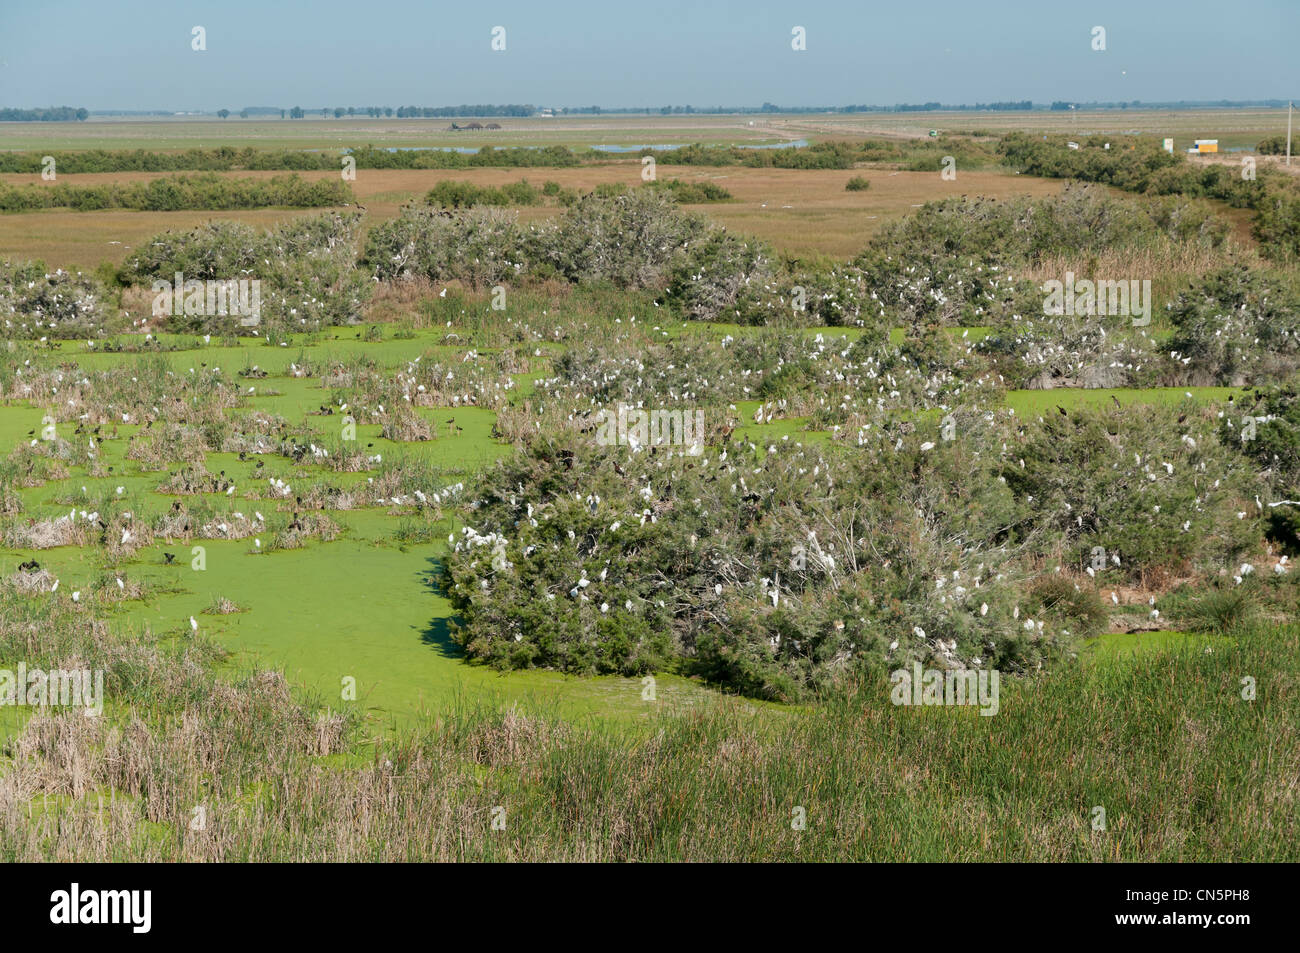 Aerial view in June of the nesting area of waterfowl and other wetland birds in Lucio de la FAO, Doñana, Spain - Stock Image